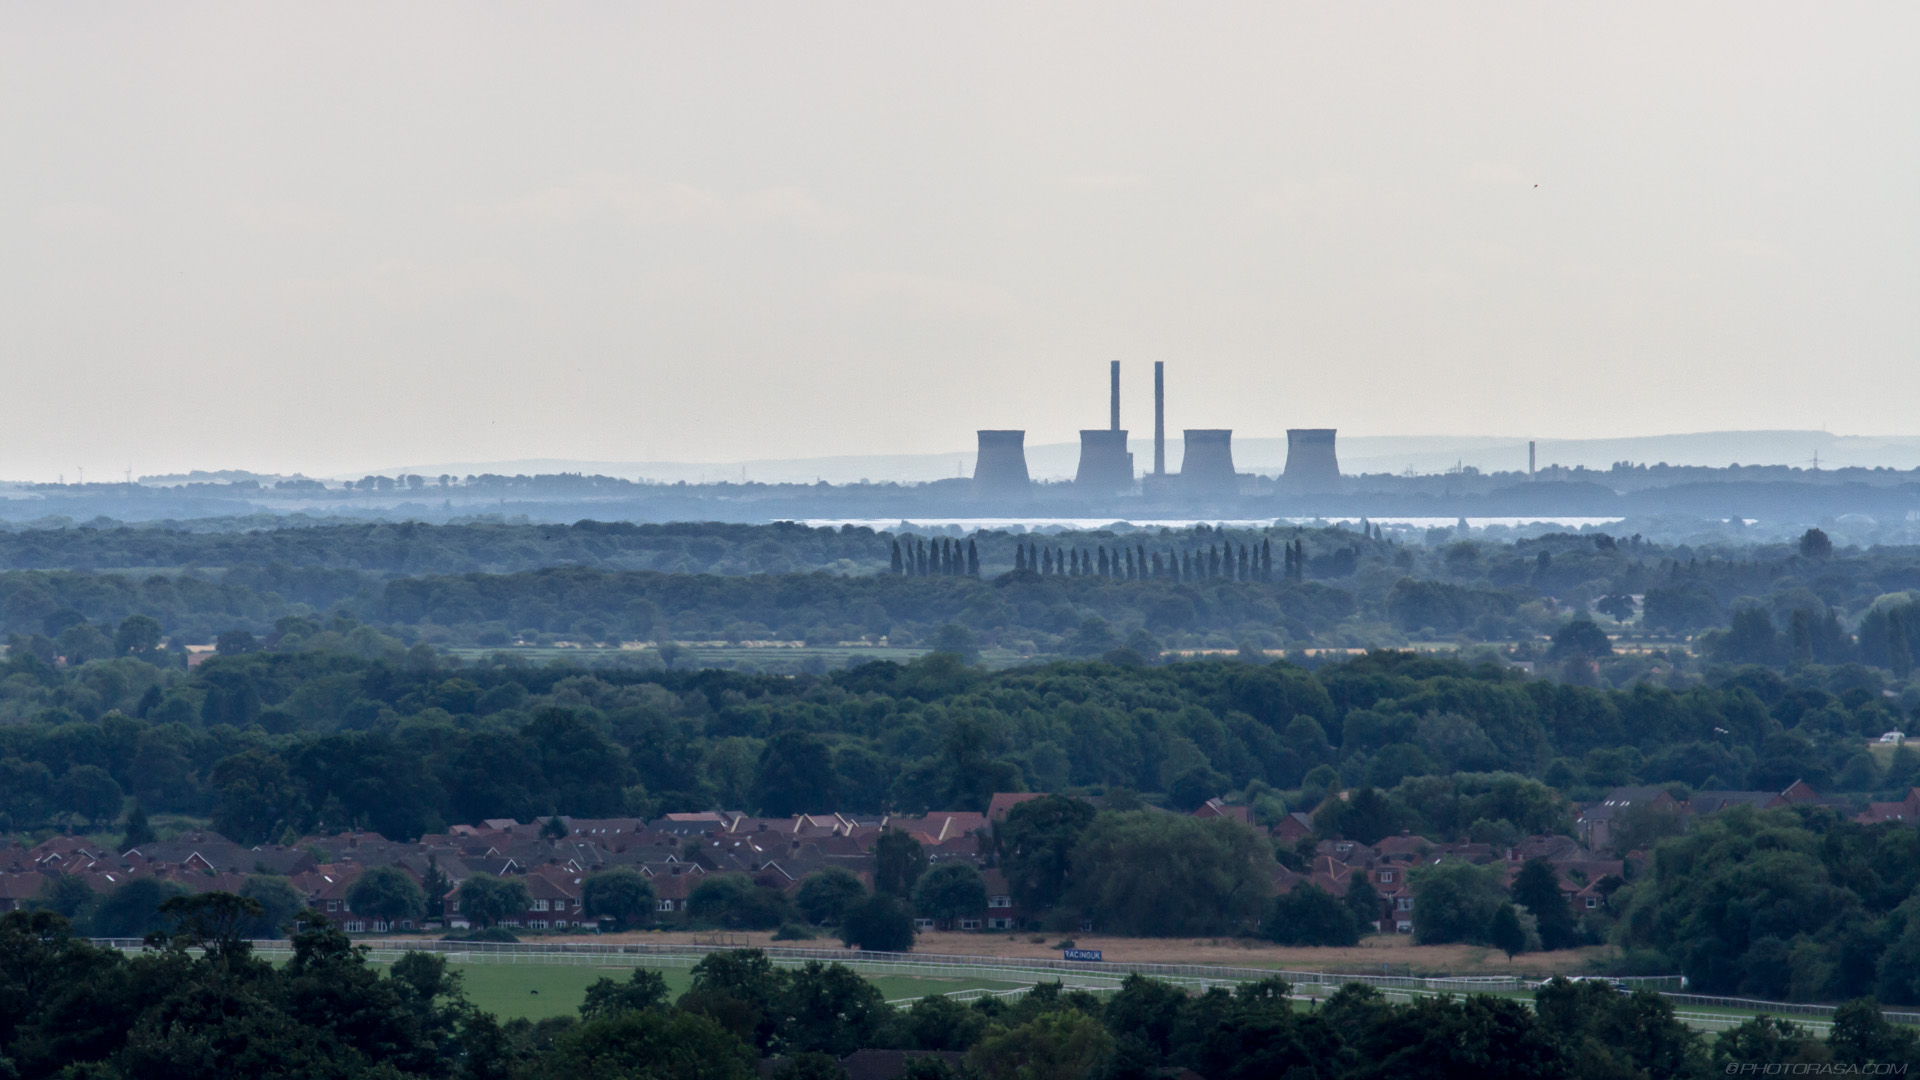 http://photorasa.com/yorkminster-cathedral/ferrybridge-power-station-from-yorkminster-tower/